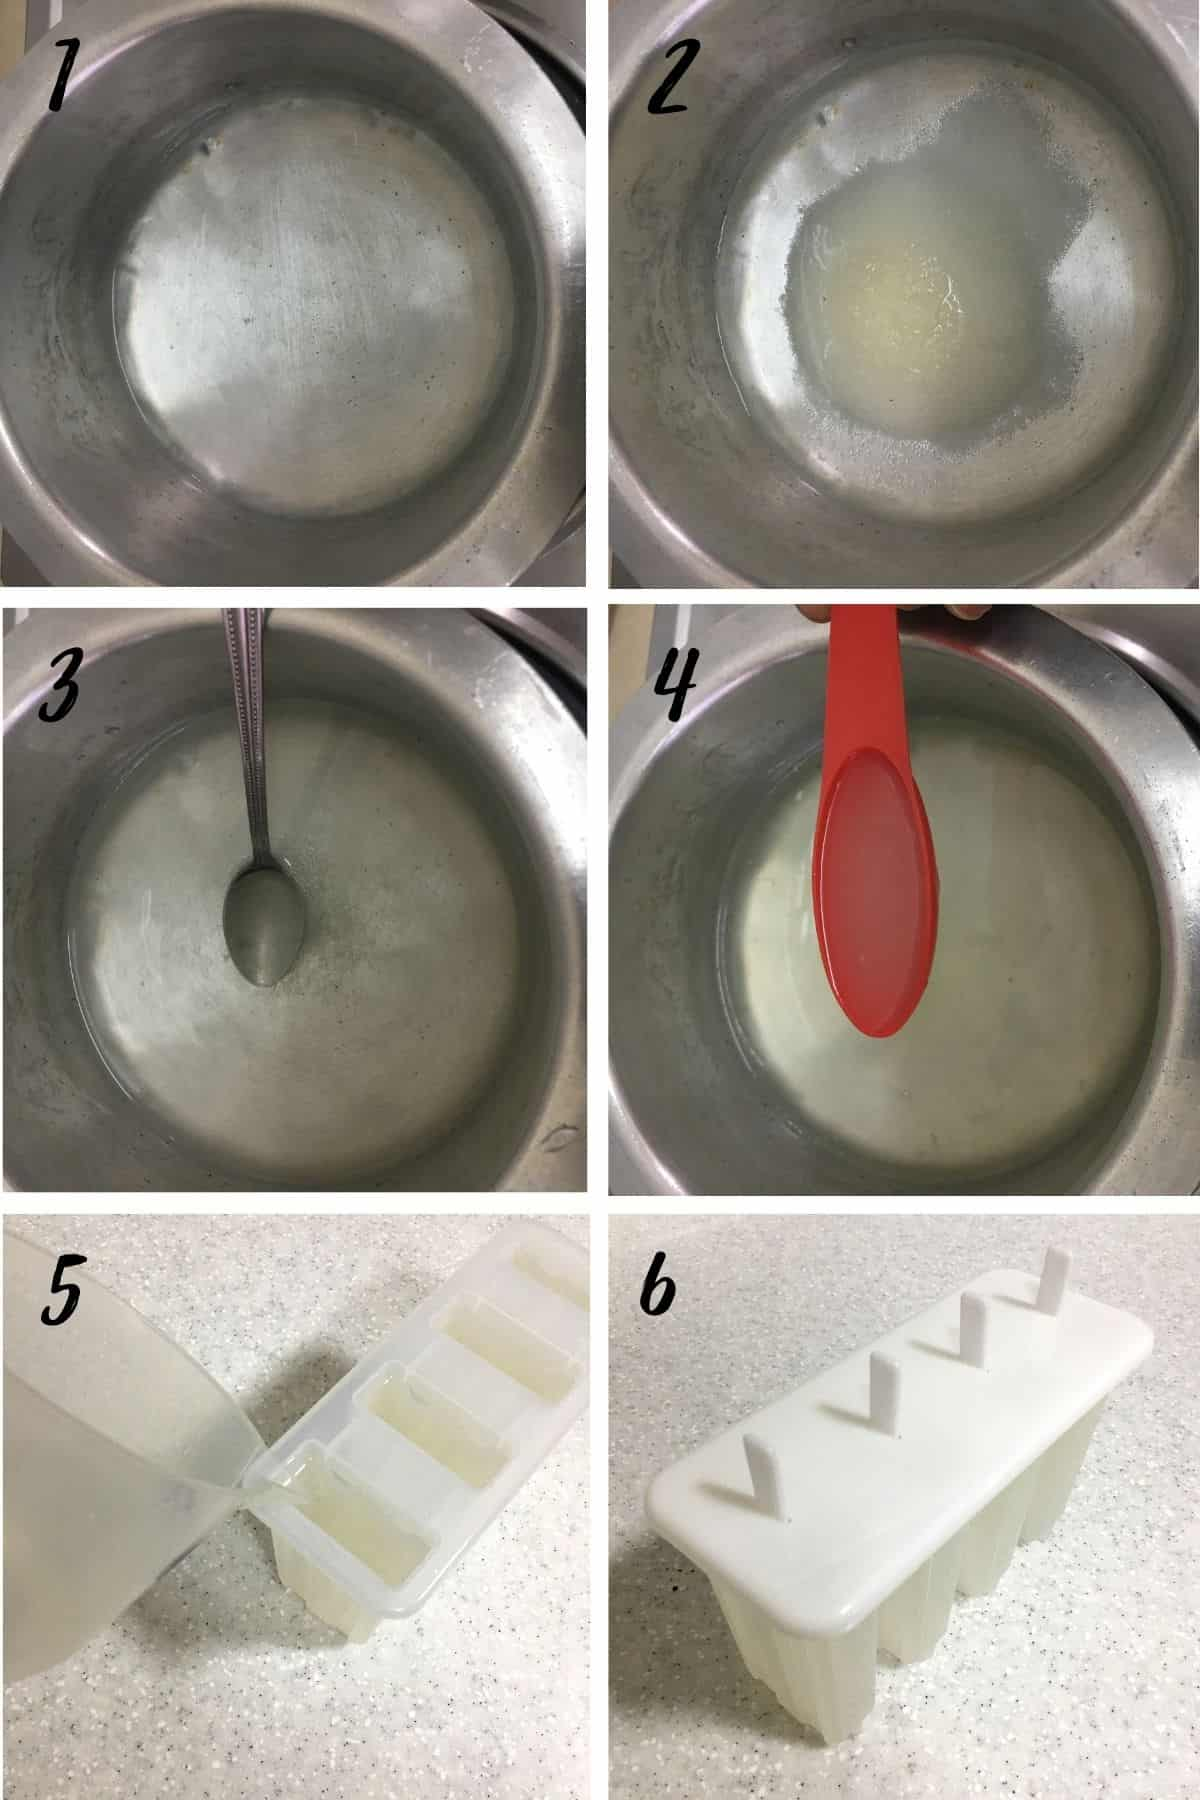 A poster of 6 images showing how to make lime popsicles